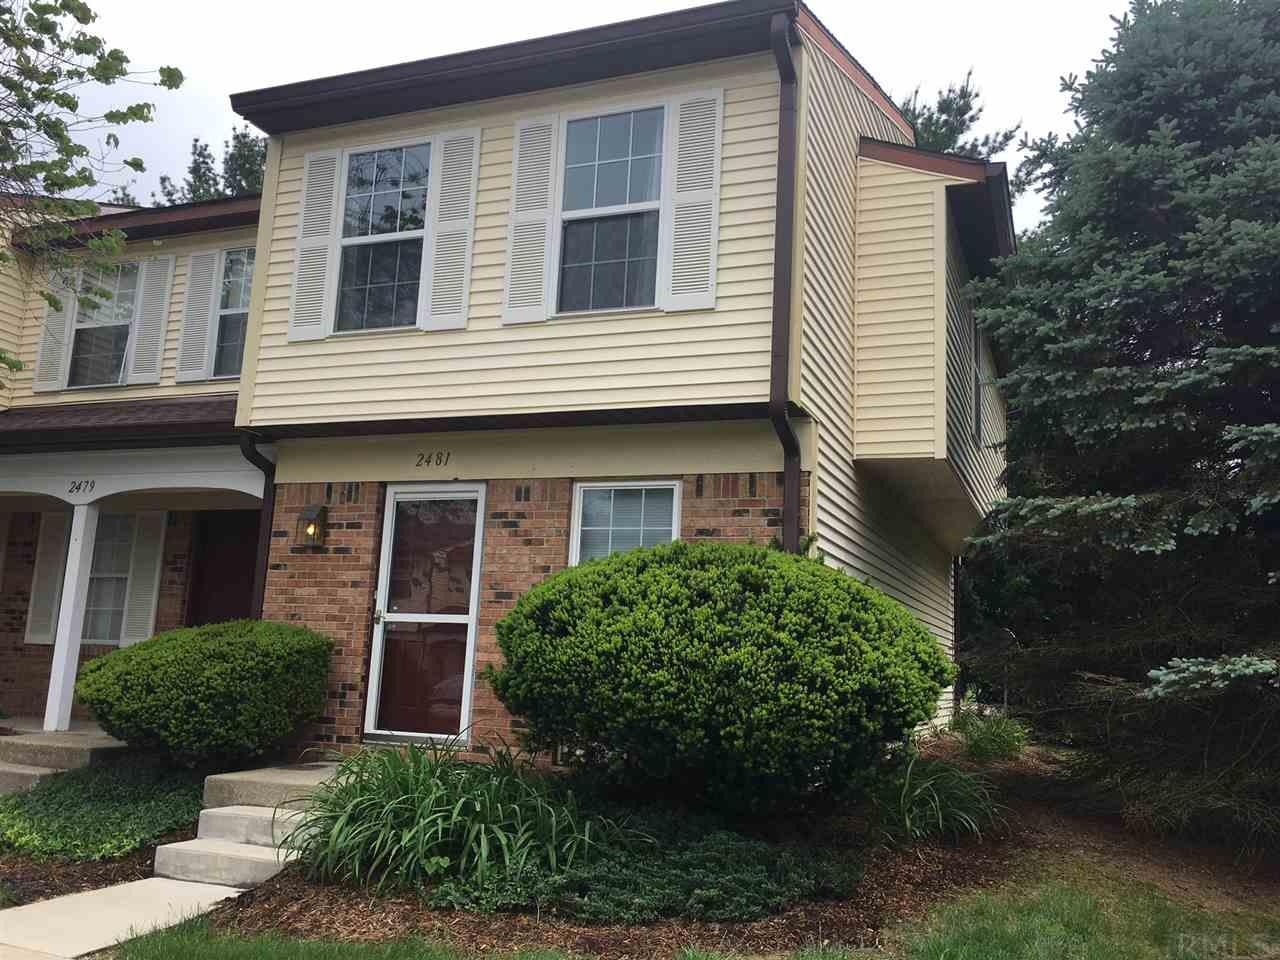 2481 S Brittany, Bloomington, IN 47401